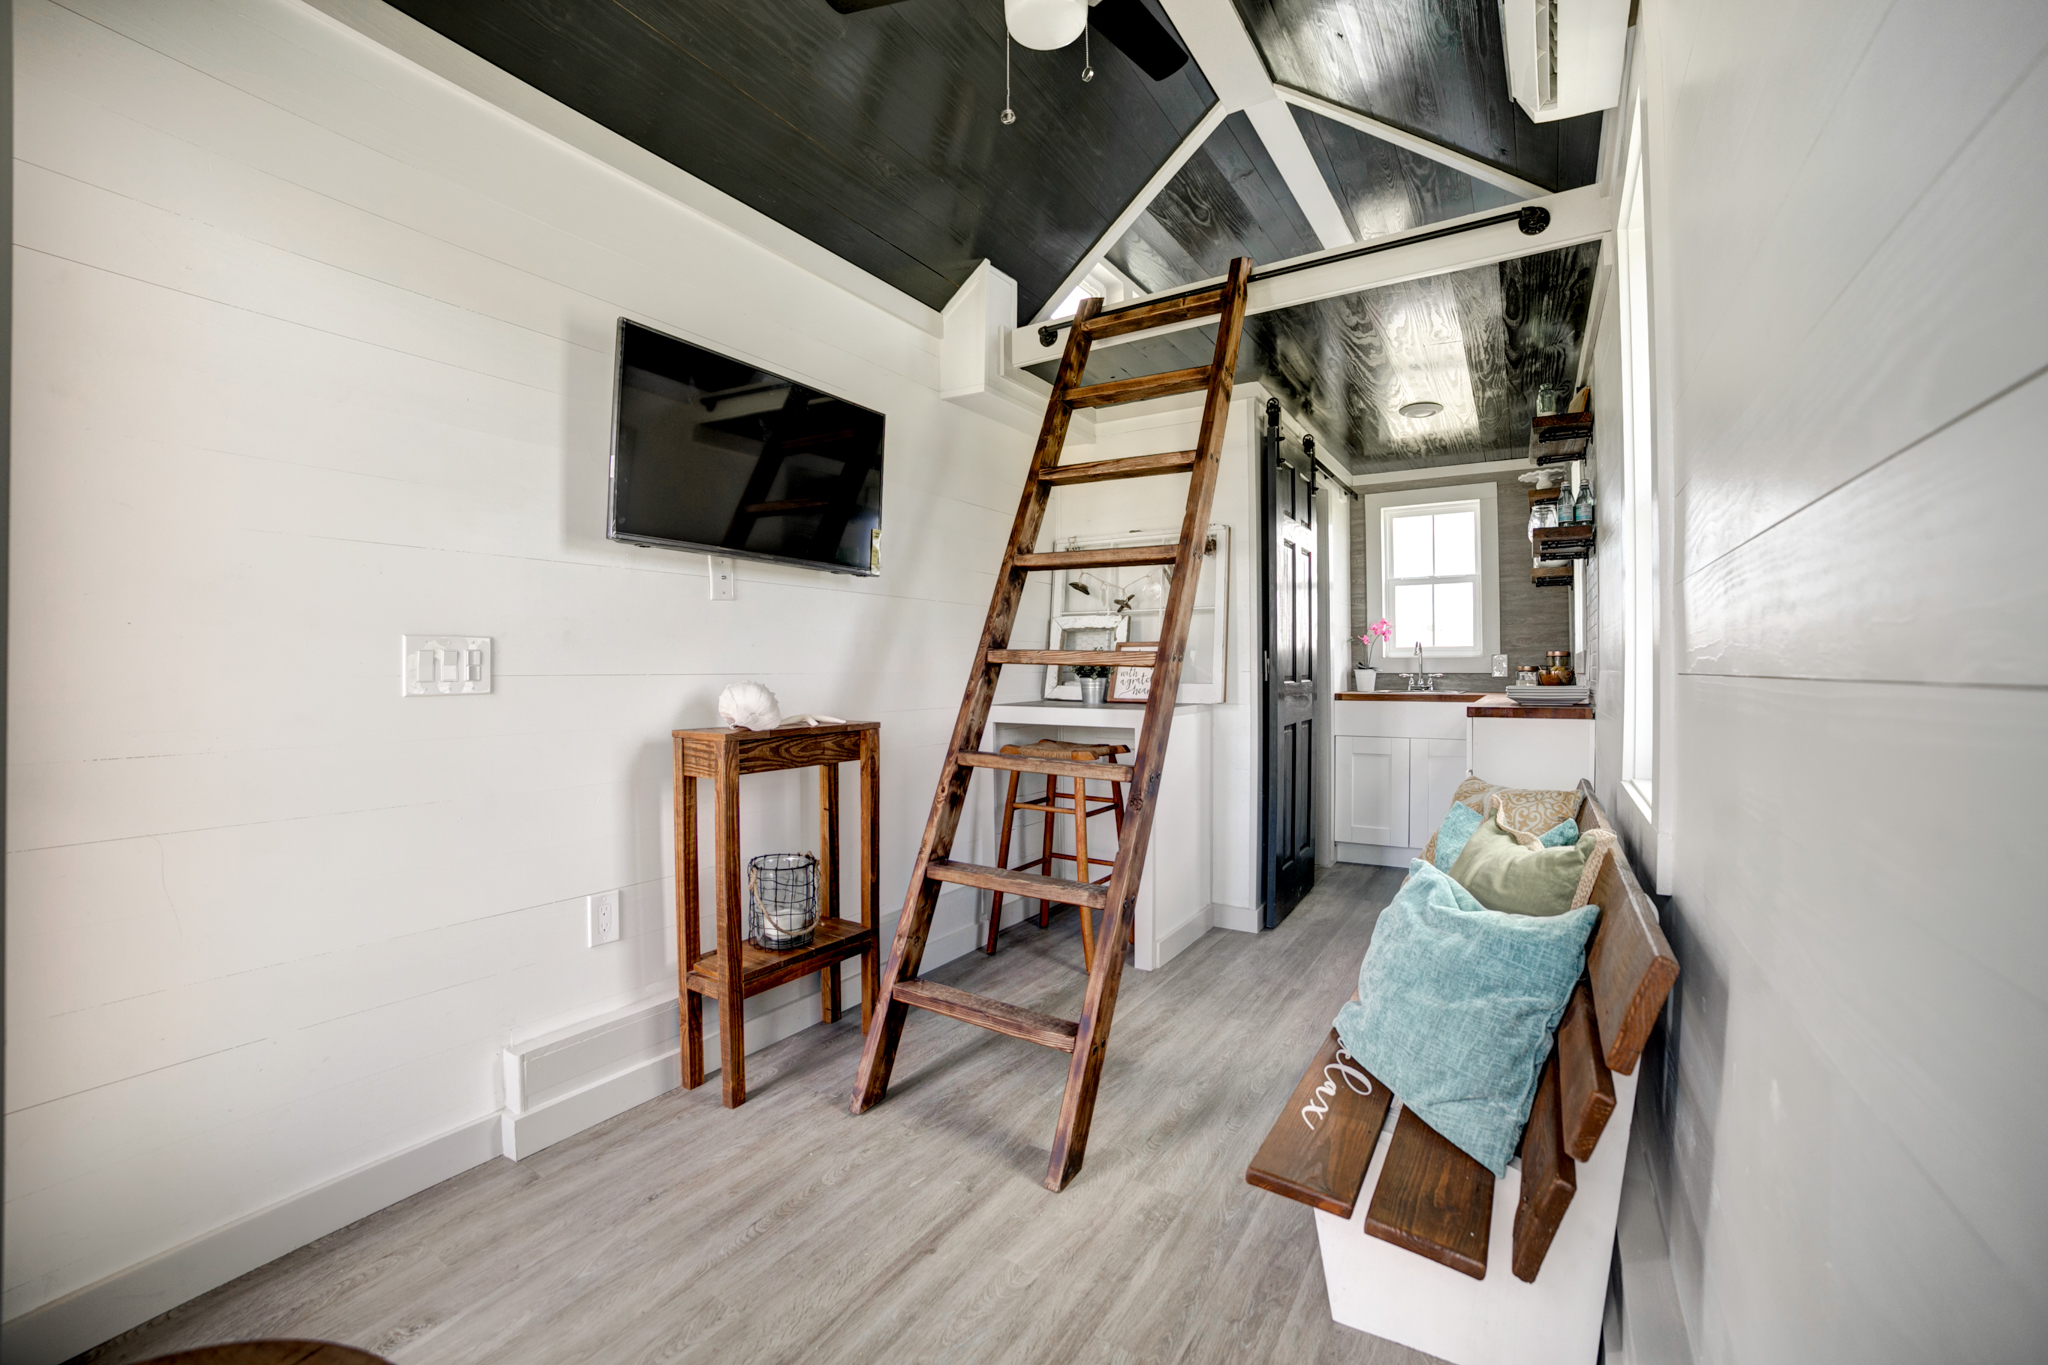 Where can you park your tiny house in Florida? | Tampa Bay